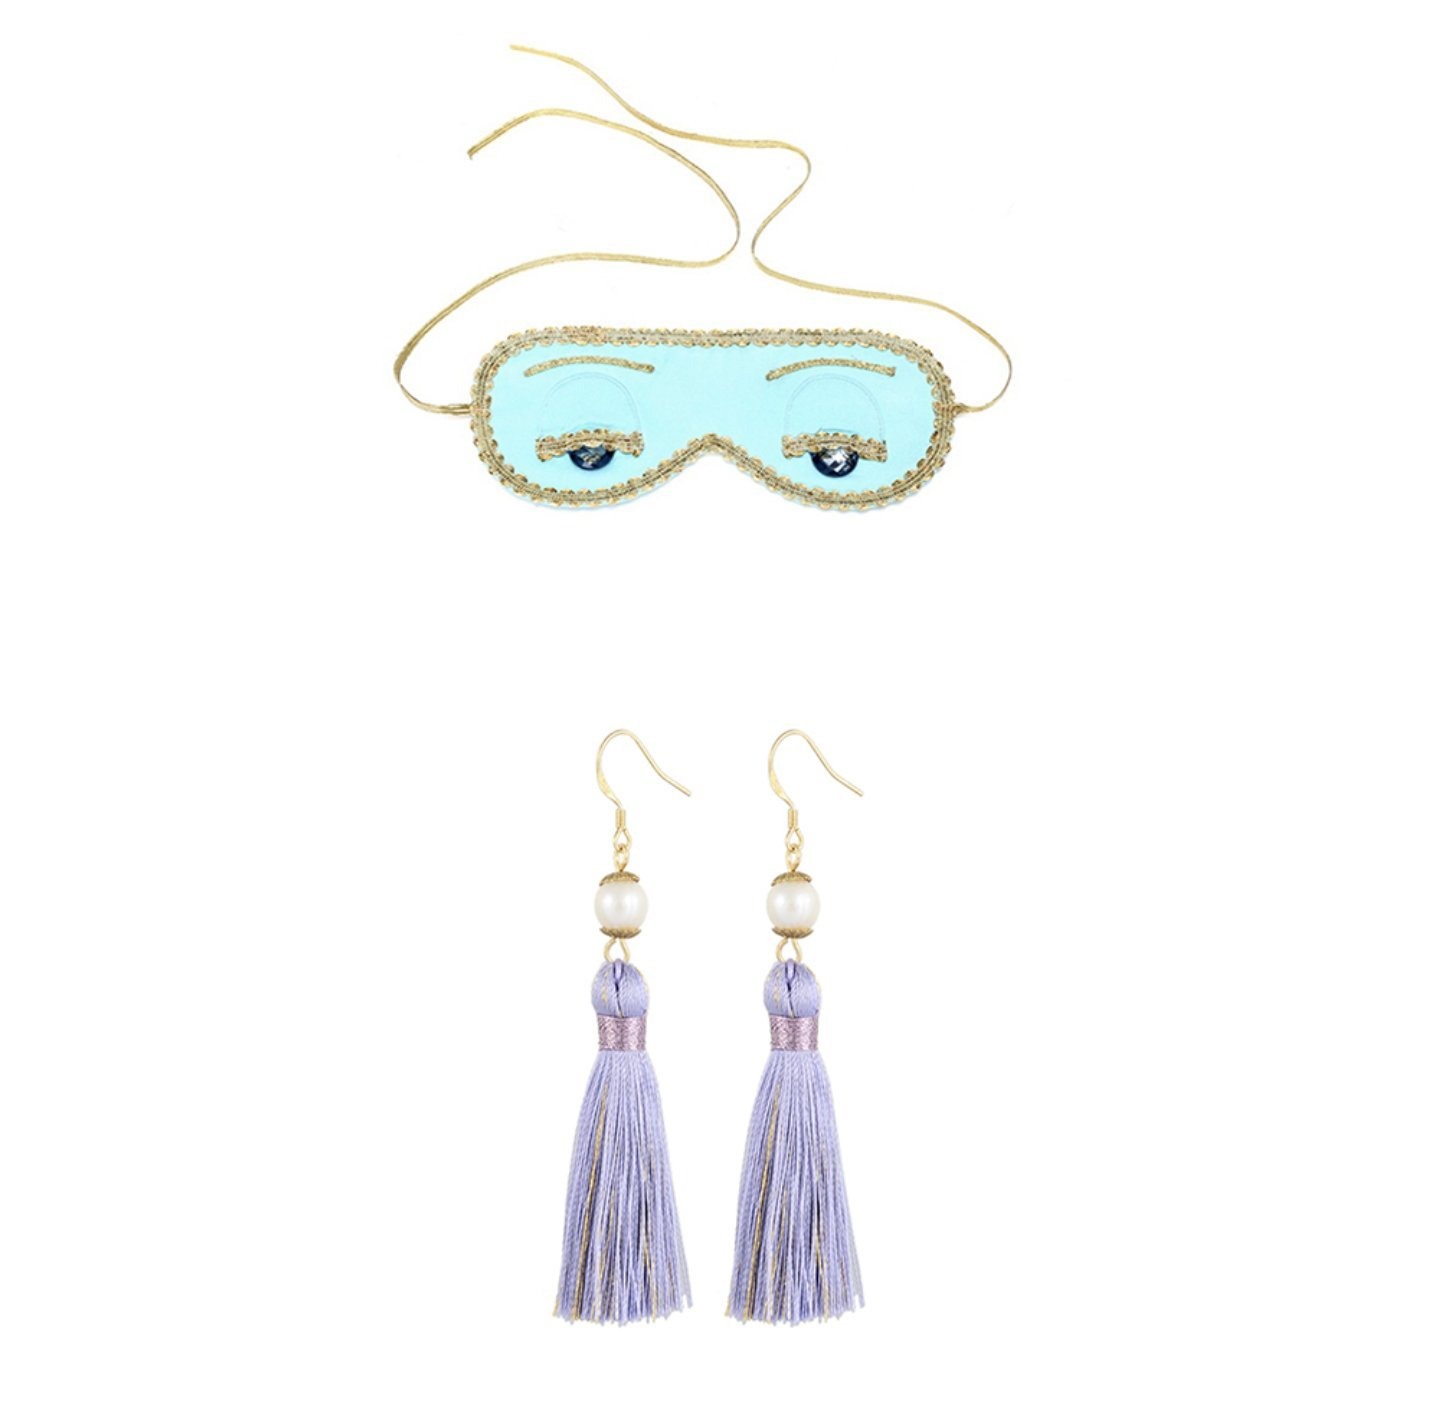 Gift Boxed Audrey Hepburn Sleep Mask Earrings Set Breakfast at Tiffany's Holly Golightly Halloween Party Costume